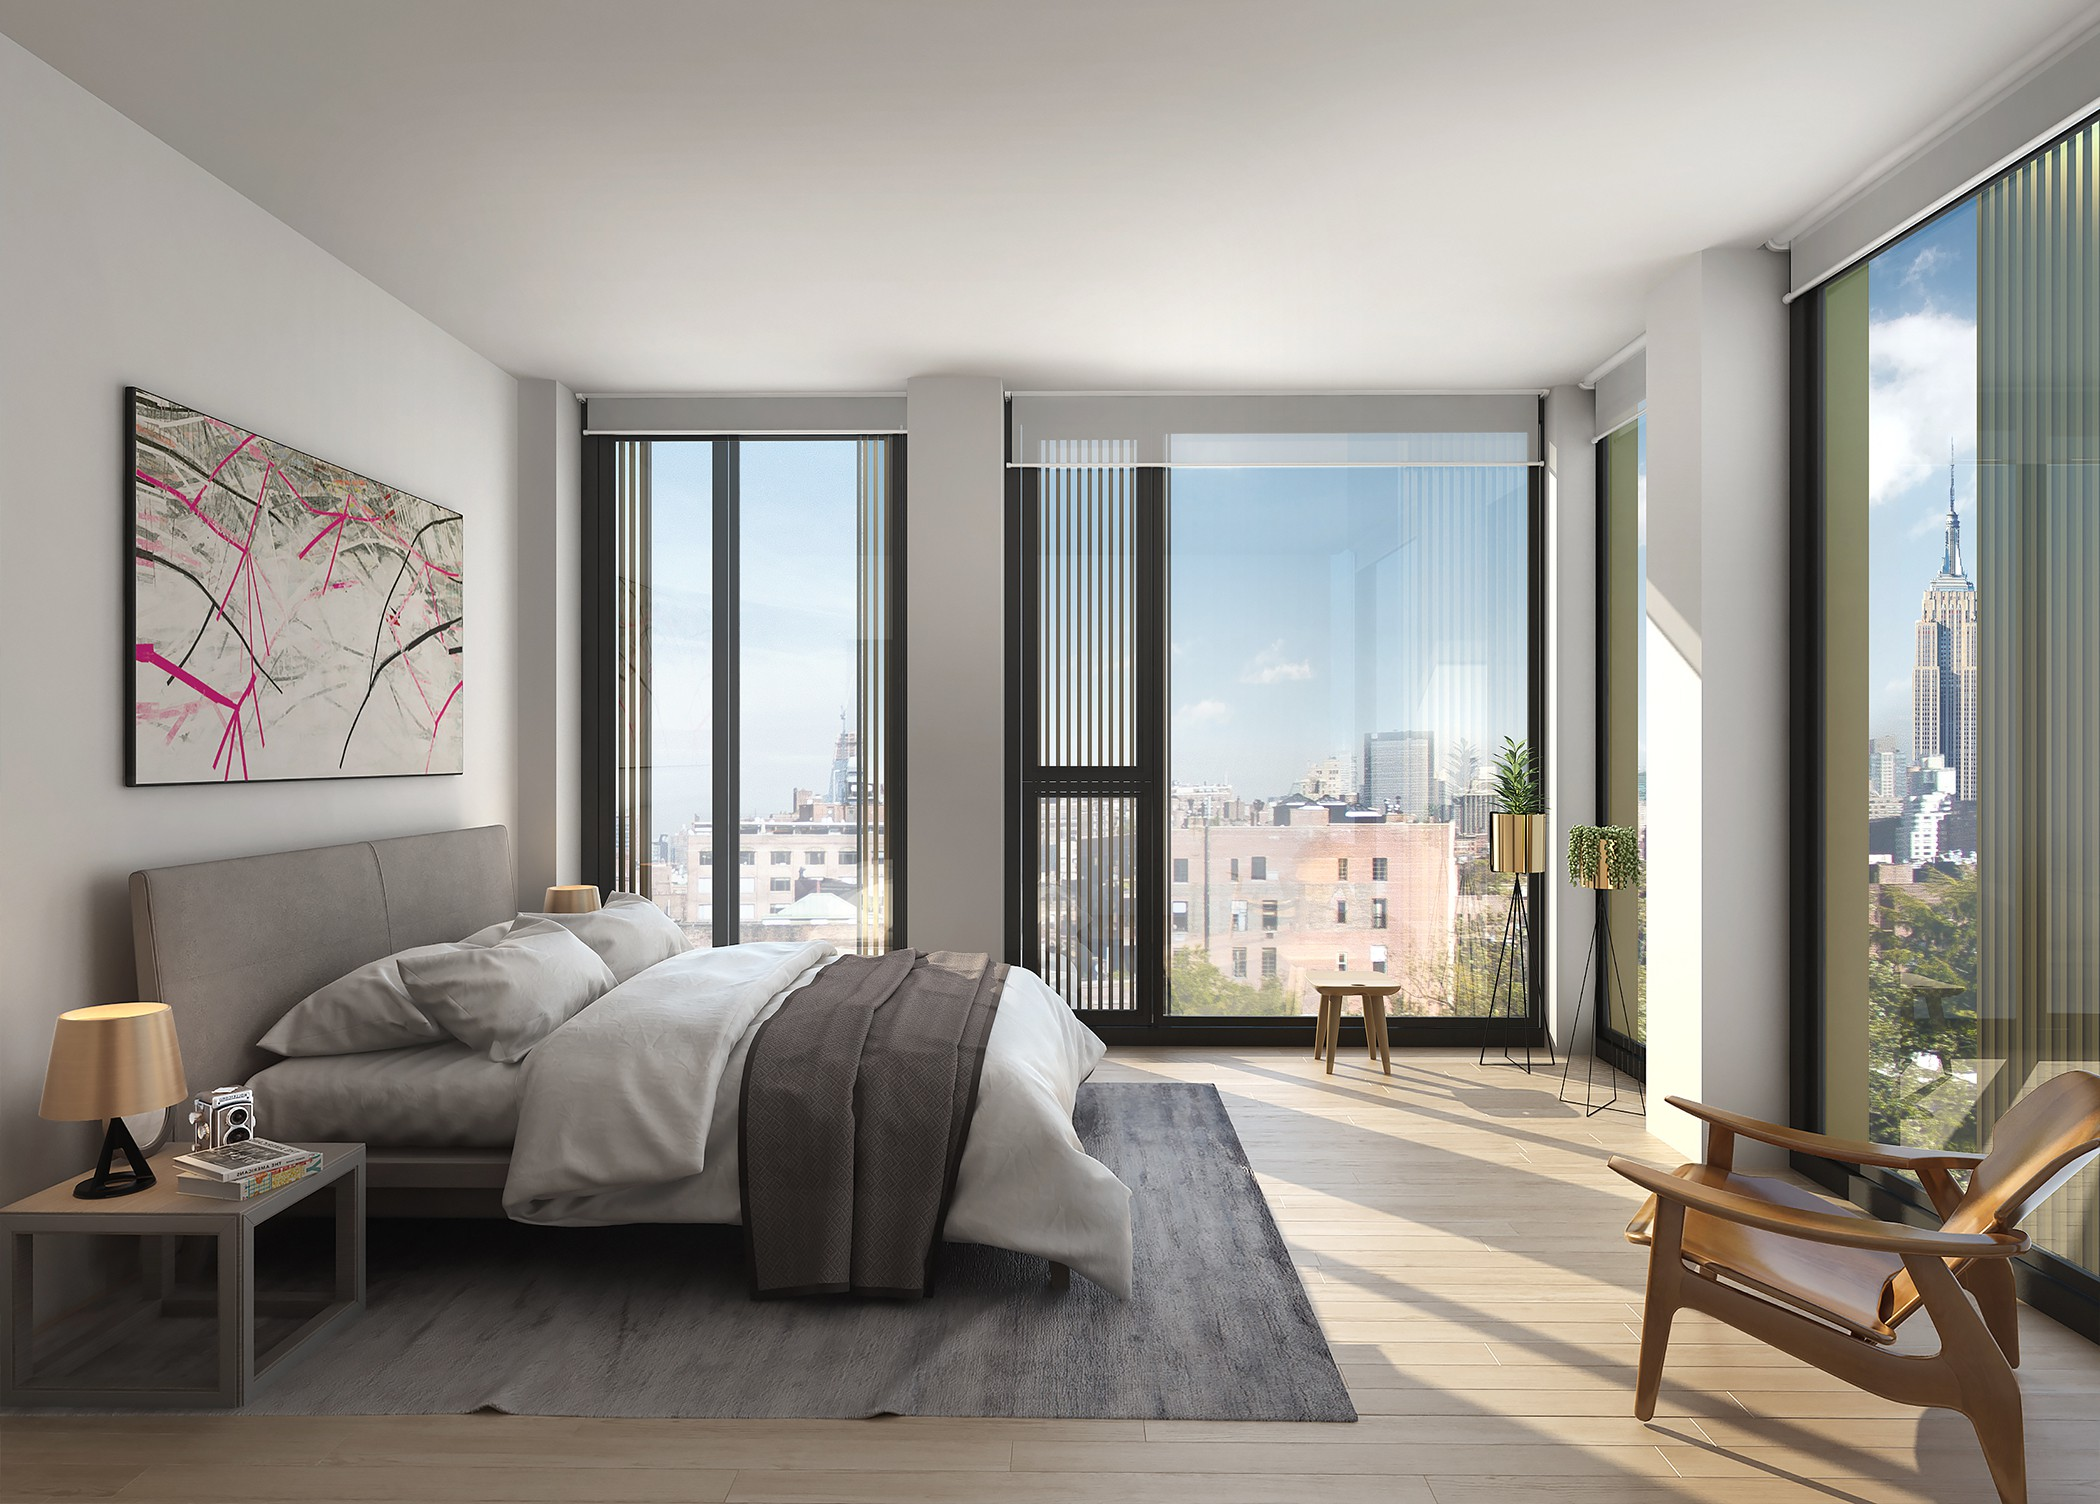 15 Things You Need To Know Before Buying An Apartment in NYC